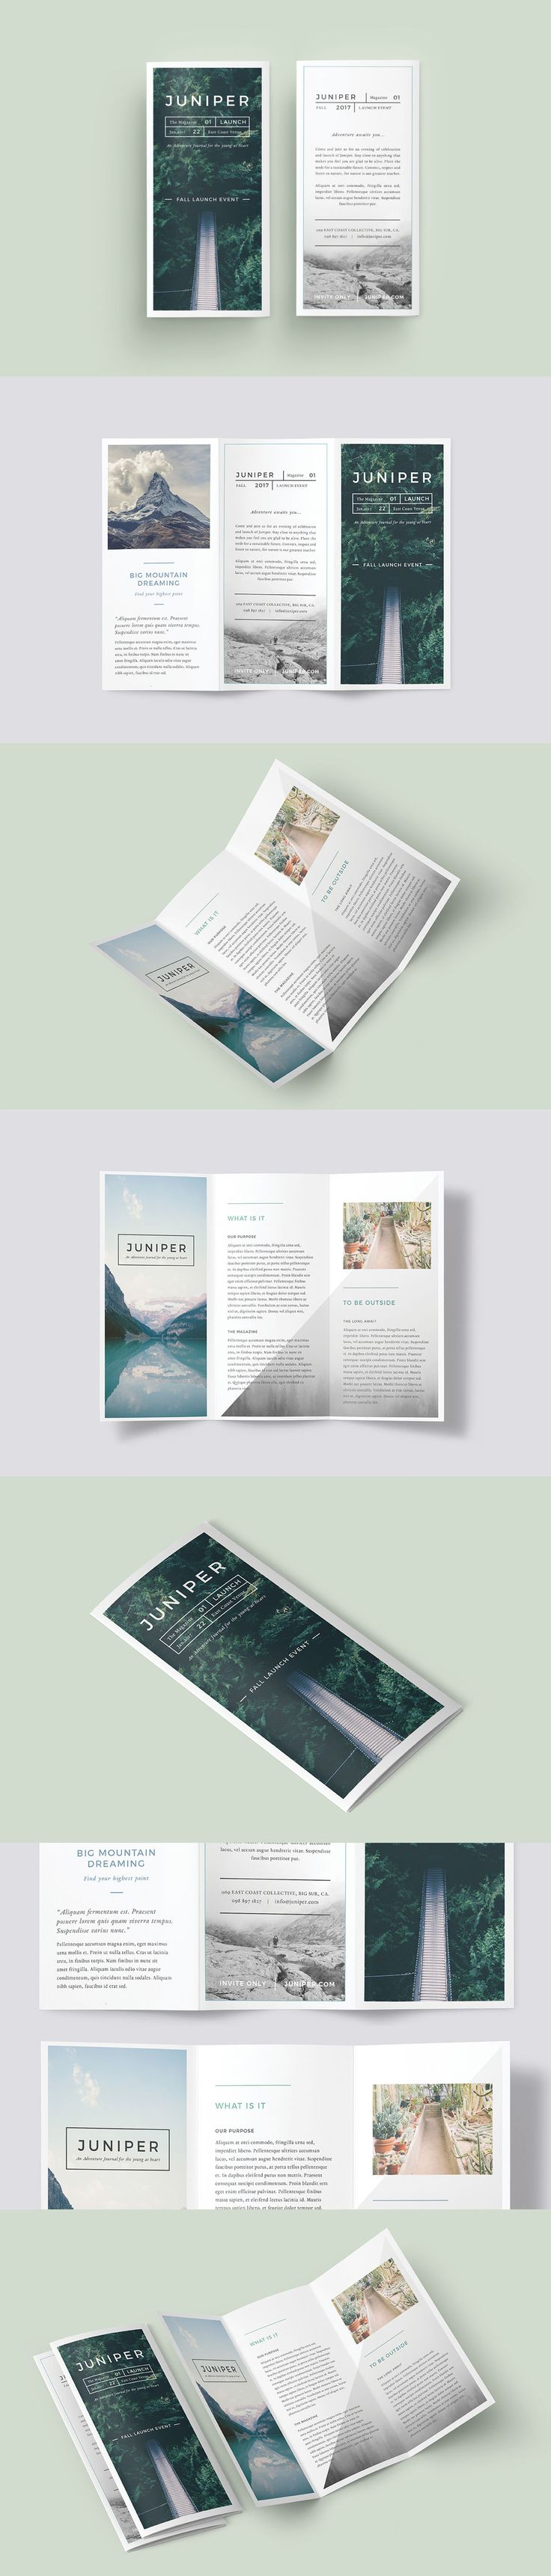 best tri fold brochure design - 9 best images about graphic design that rules brochure